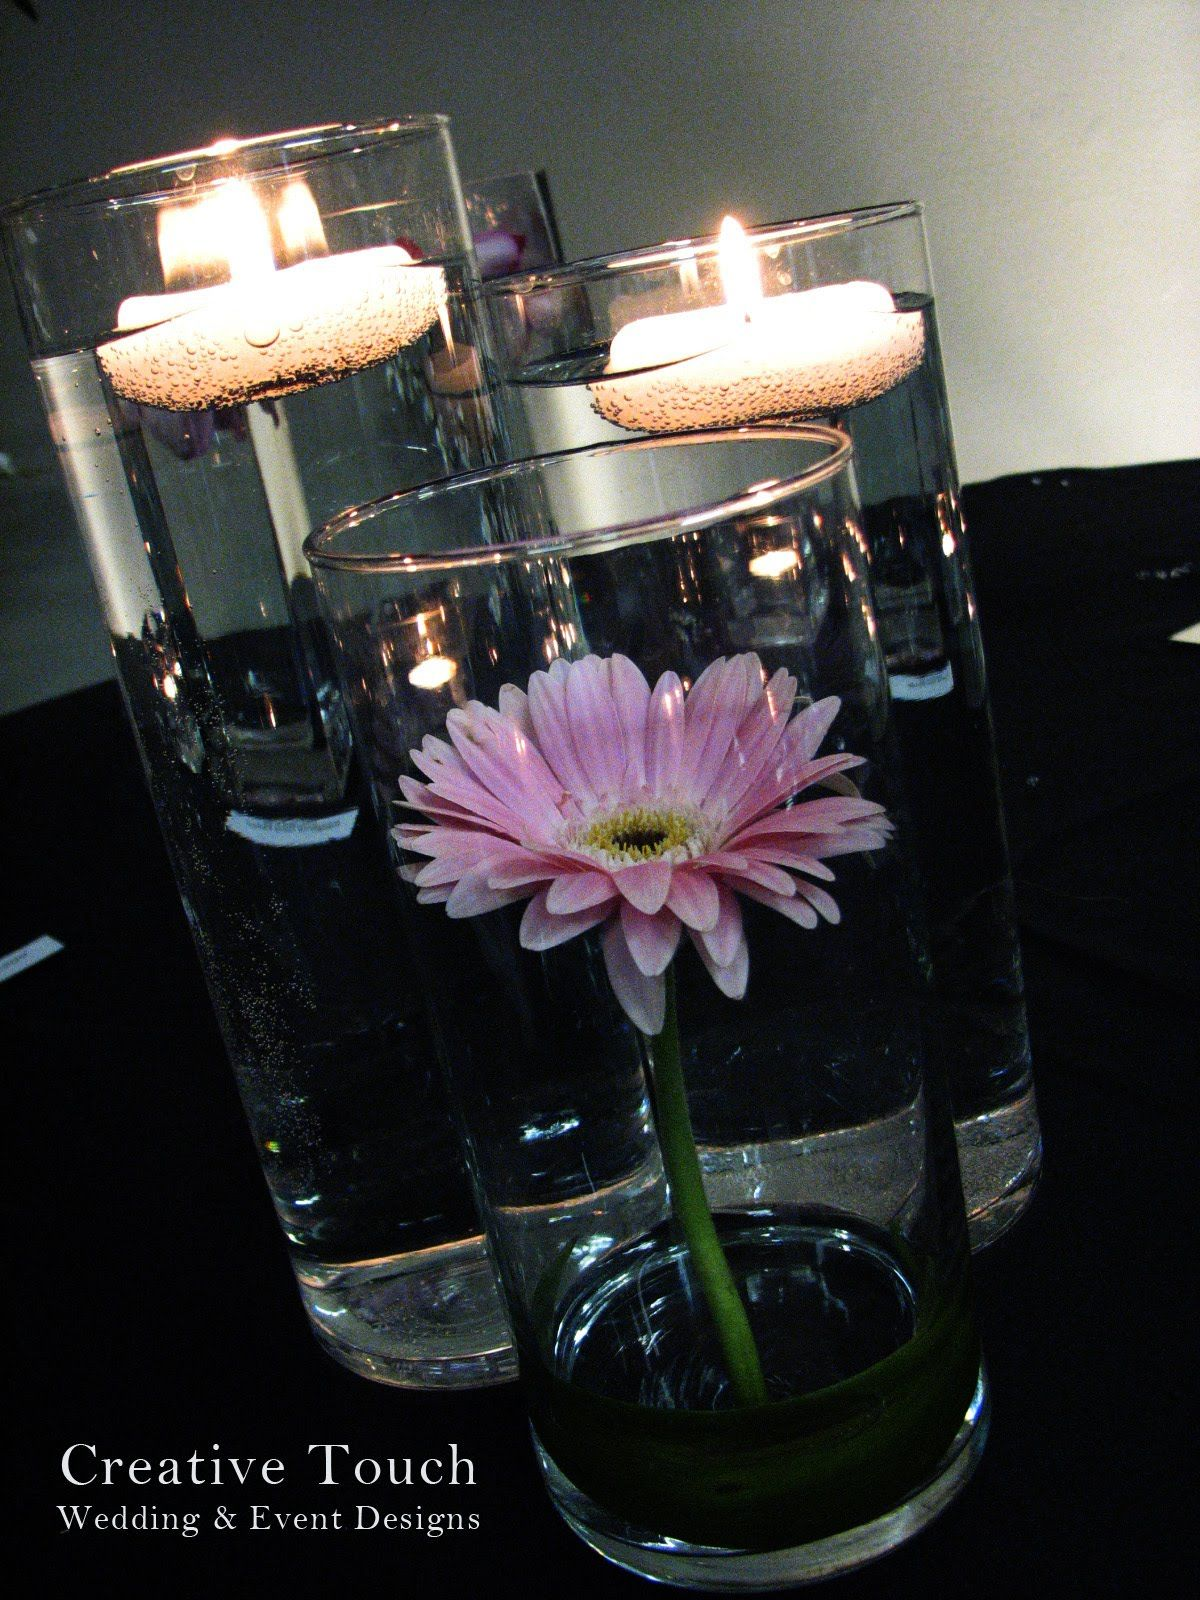 Creative Touch Wedding Designs: Elegance Decor Pkg Centerpiece Samples